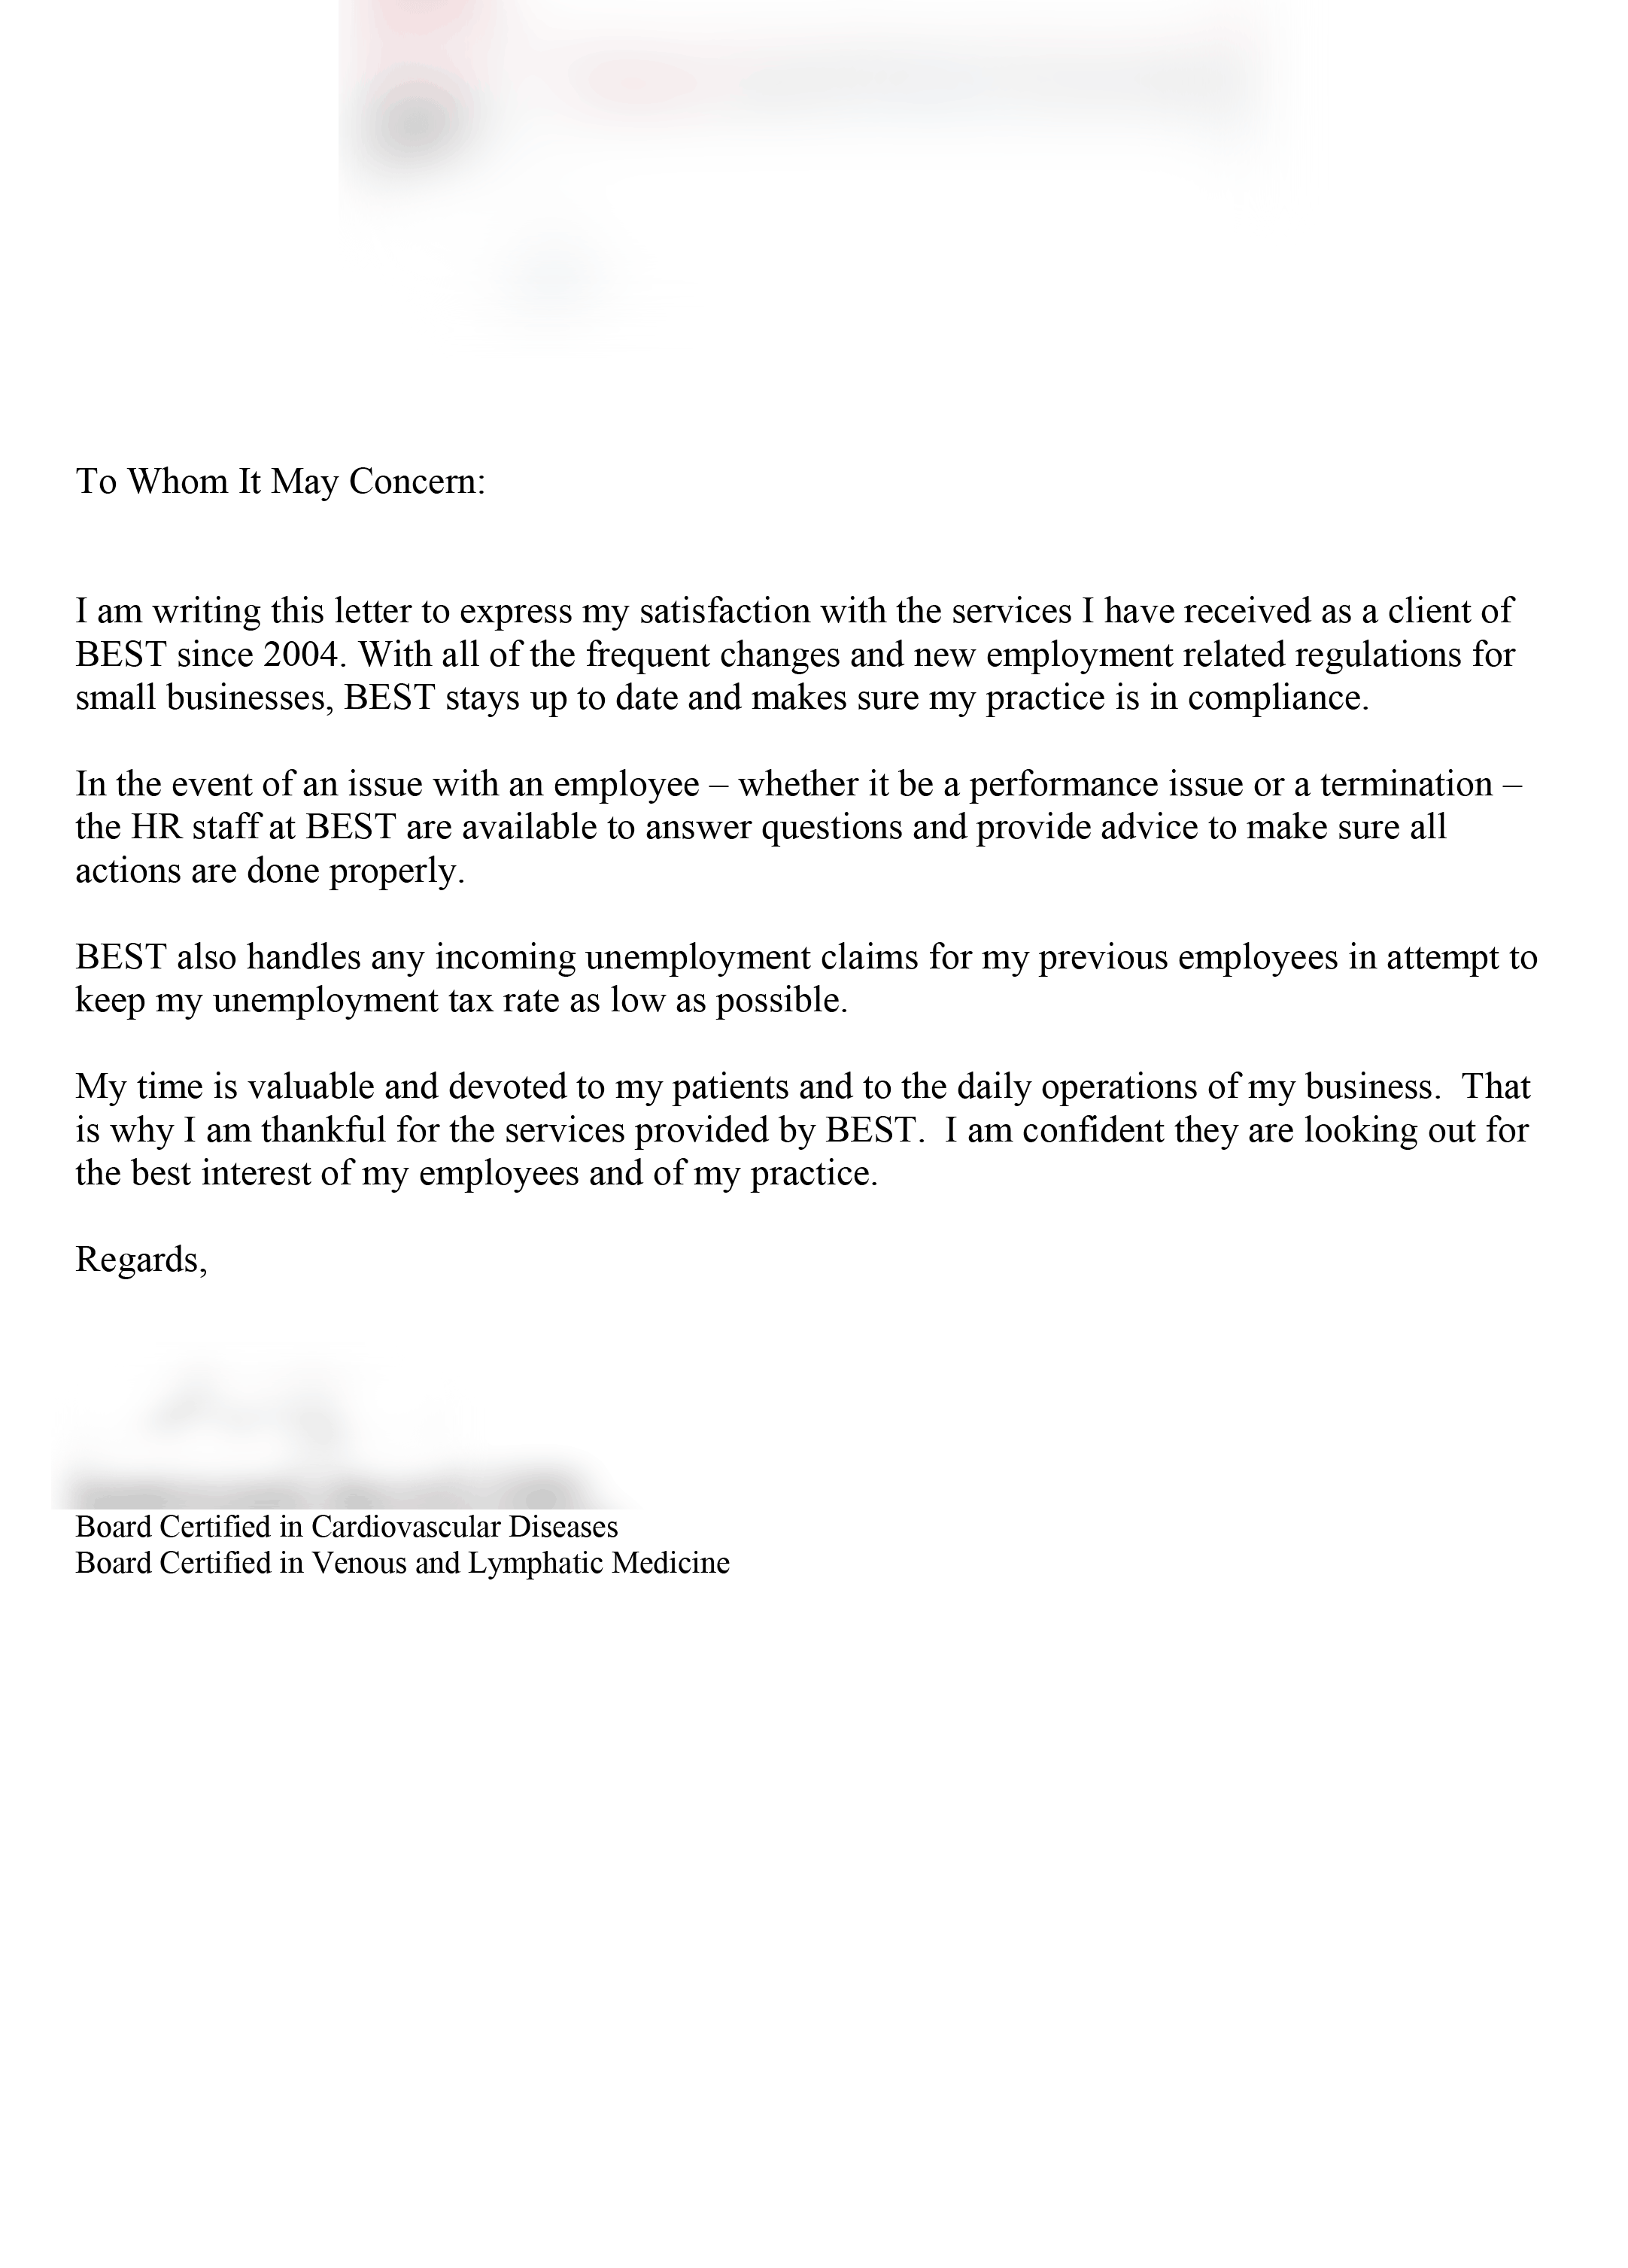 Dr-Farhy-Signed-Reference-Letter.png